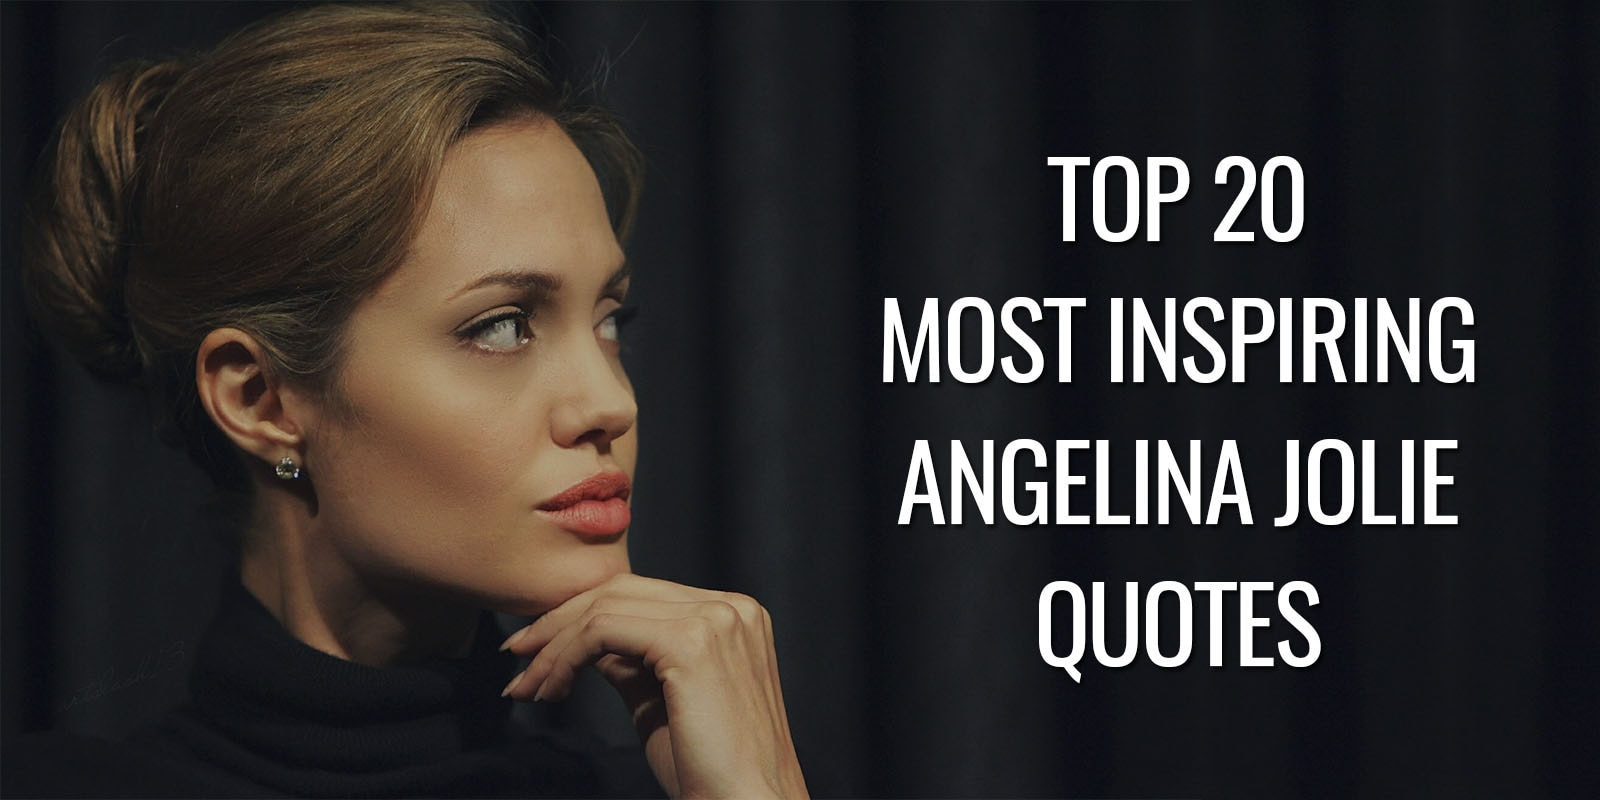 Popular Inspirational Quotes Top 20 Most Inspiring Angelina Jolie Quotes  Goalcast